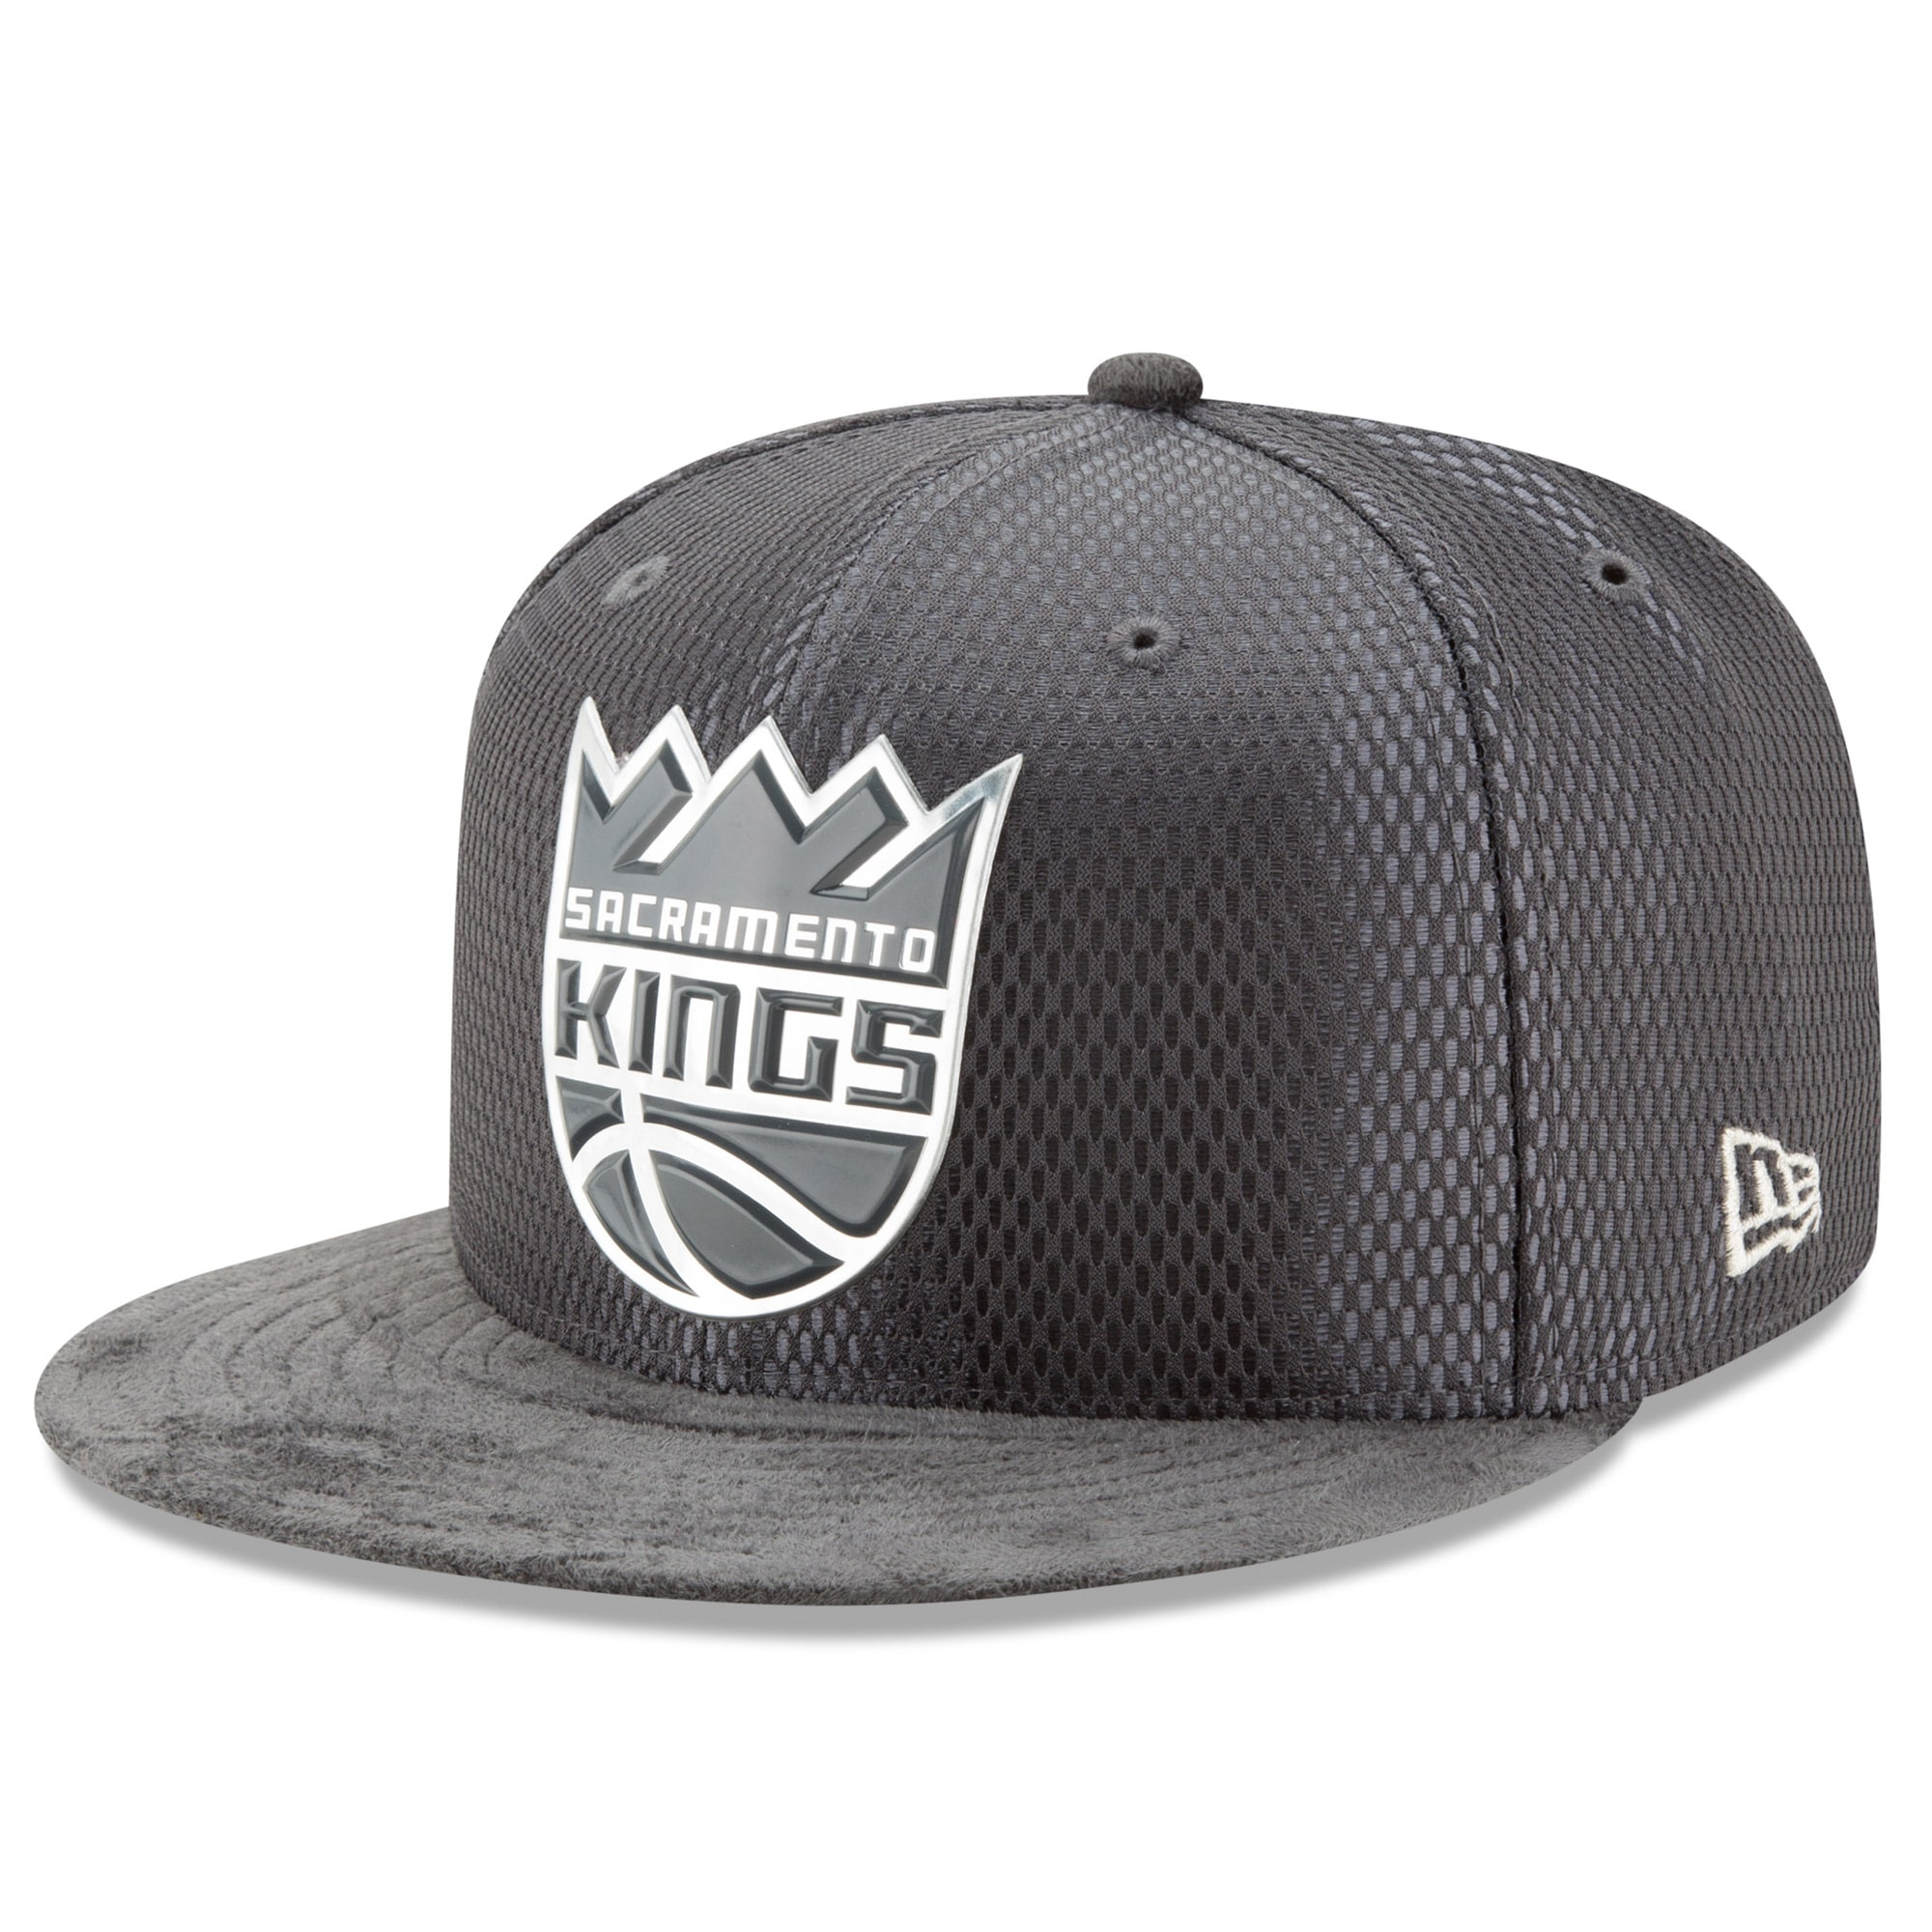 Sacramento Kings New Era Draft Silver Logo 59FIFTY Fitted Hat - Graphite